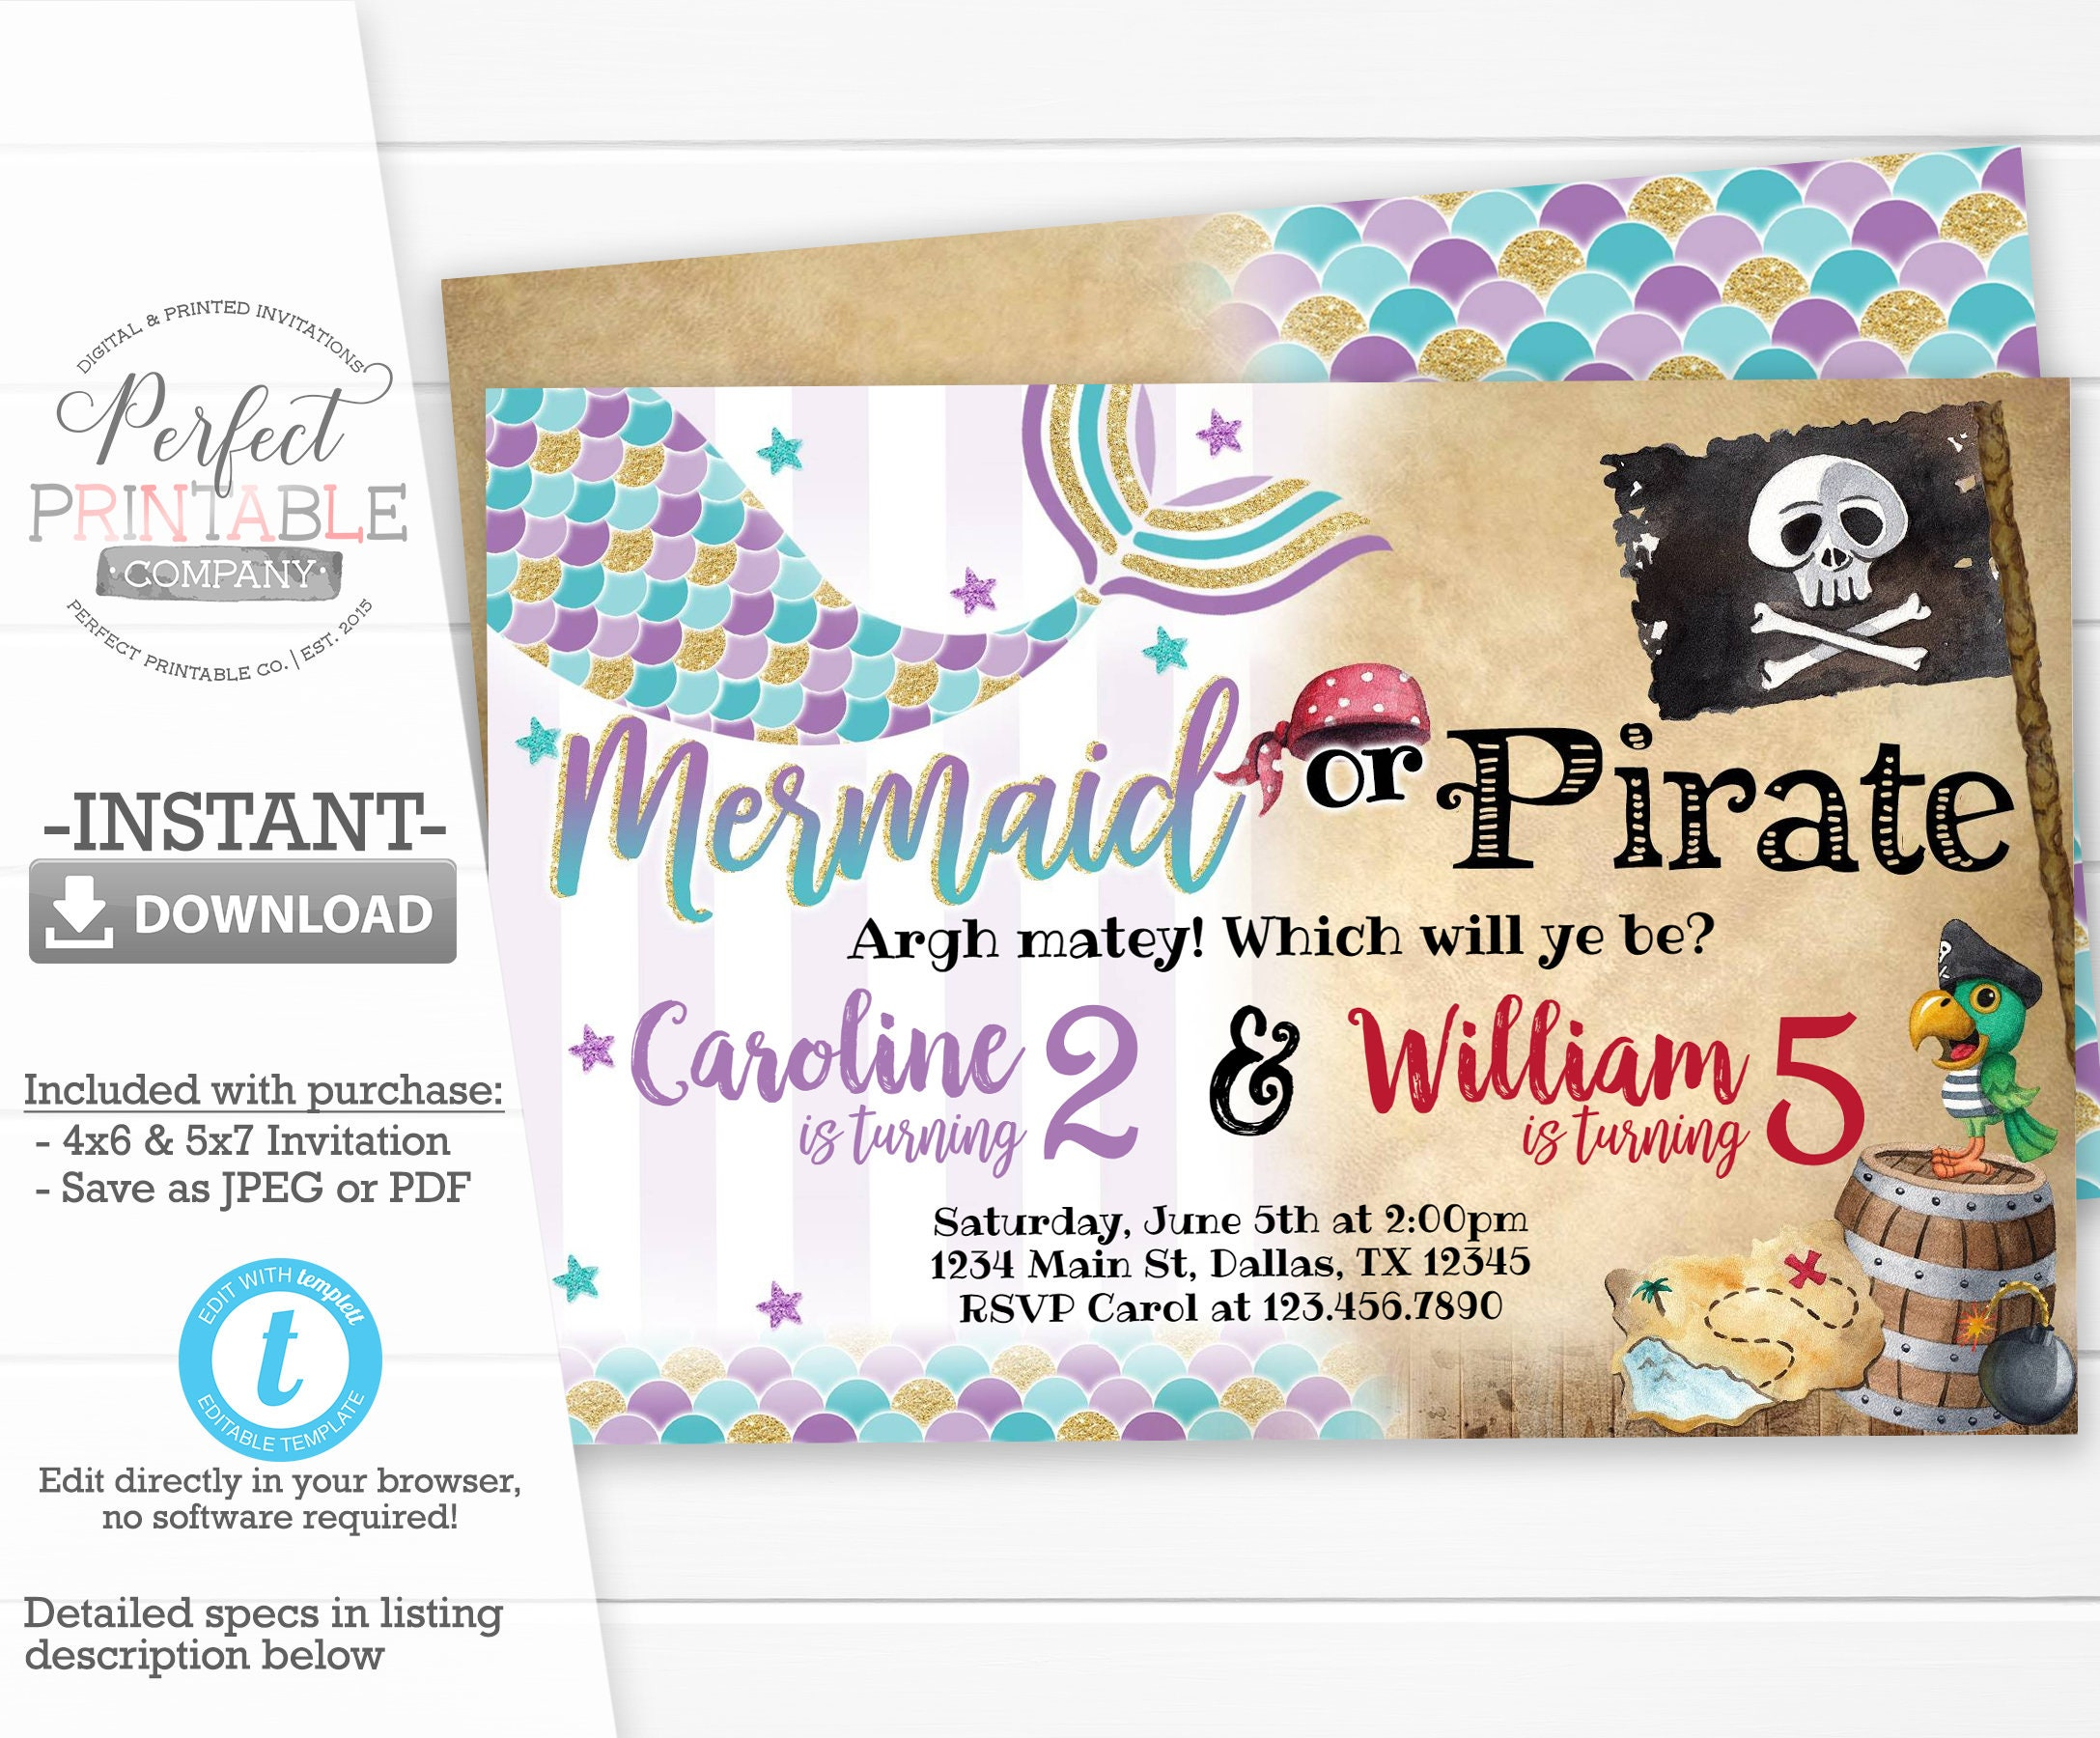 Mermaid Or Pirate Invitation Birthday Party Invite Sibling Twins Editable Template 501